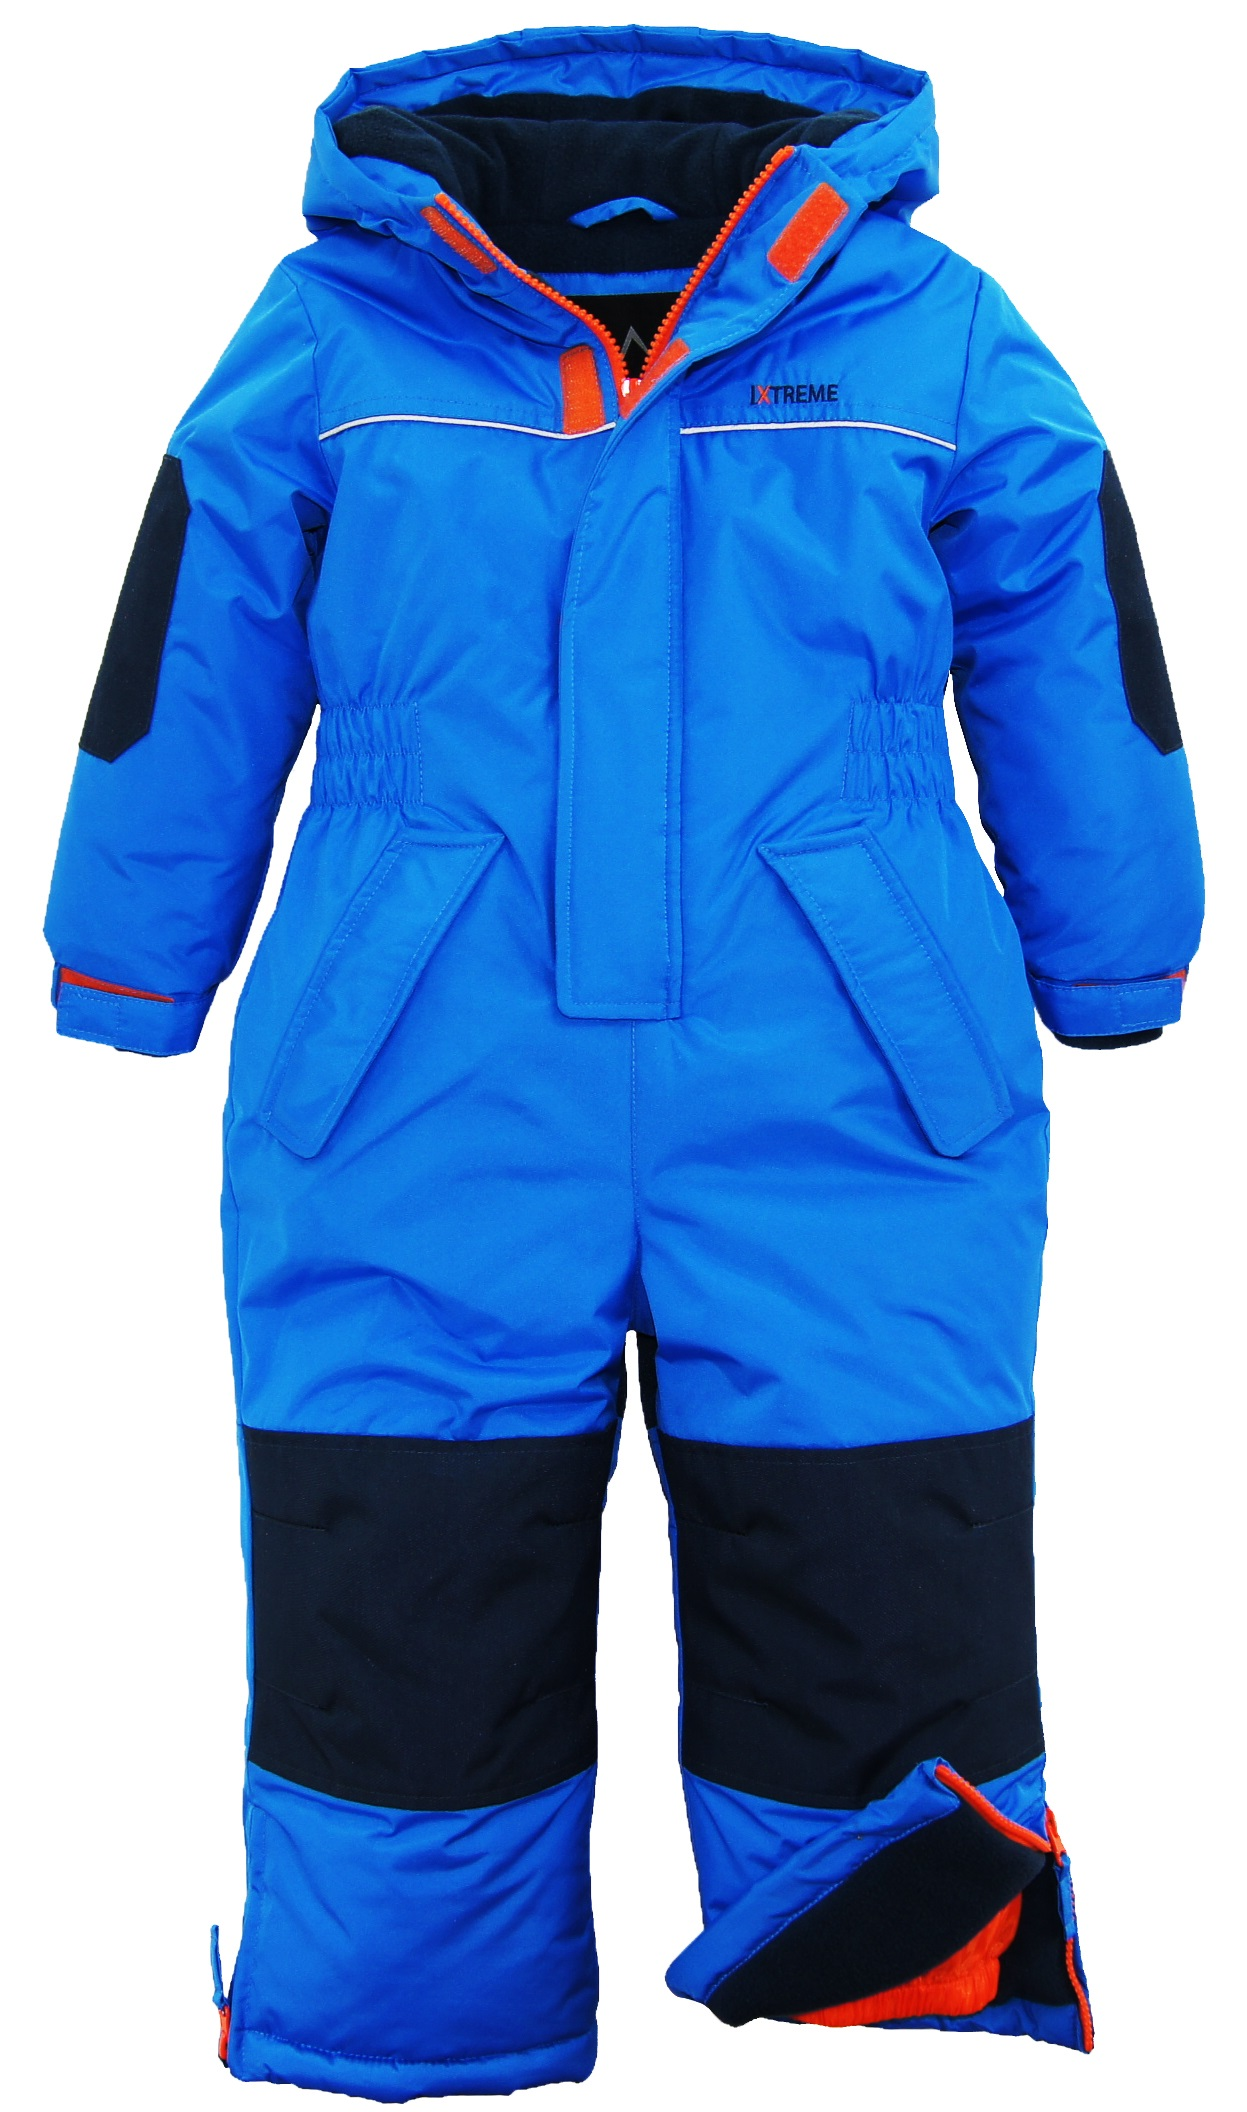 Shop for and buy baby snowsuit online at Macy's. Find baby snowsuit at Macy's.